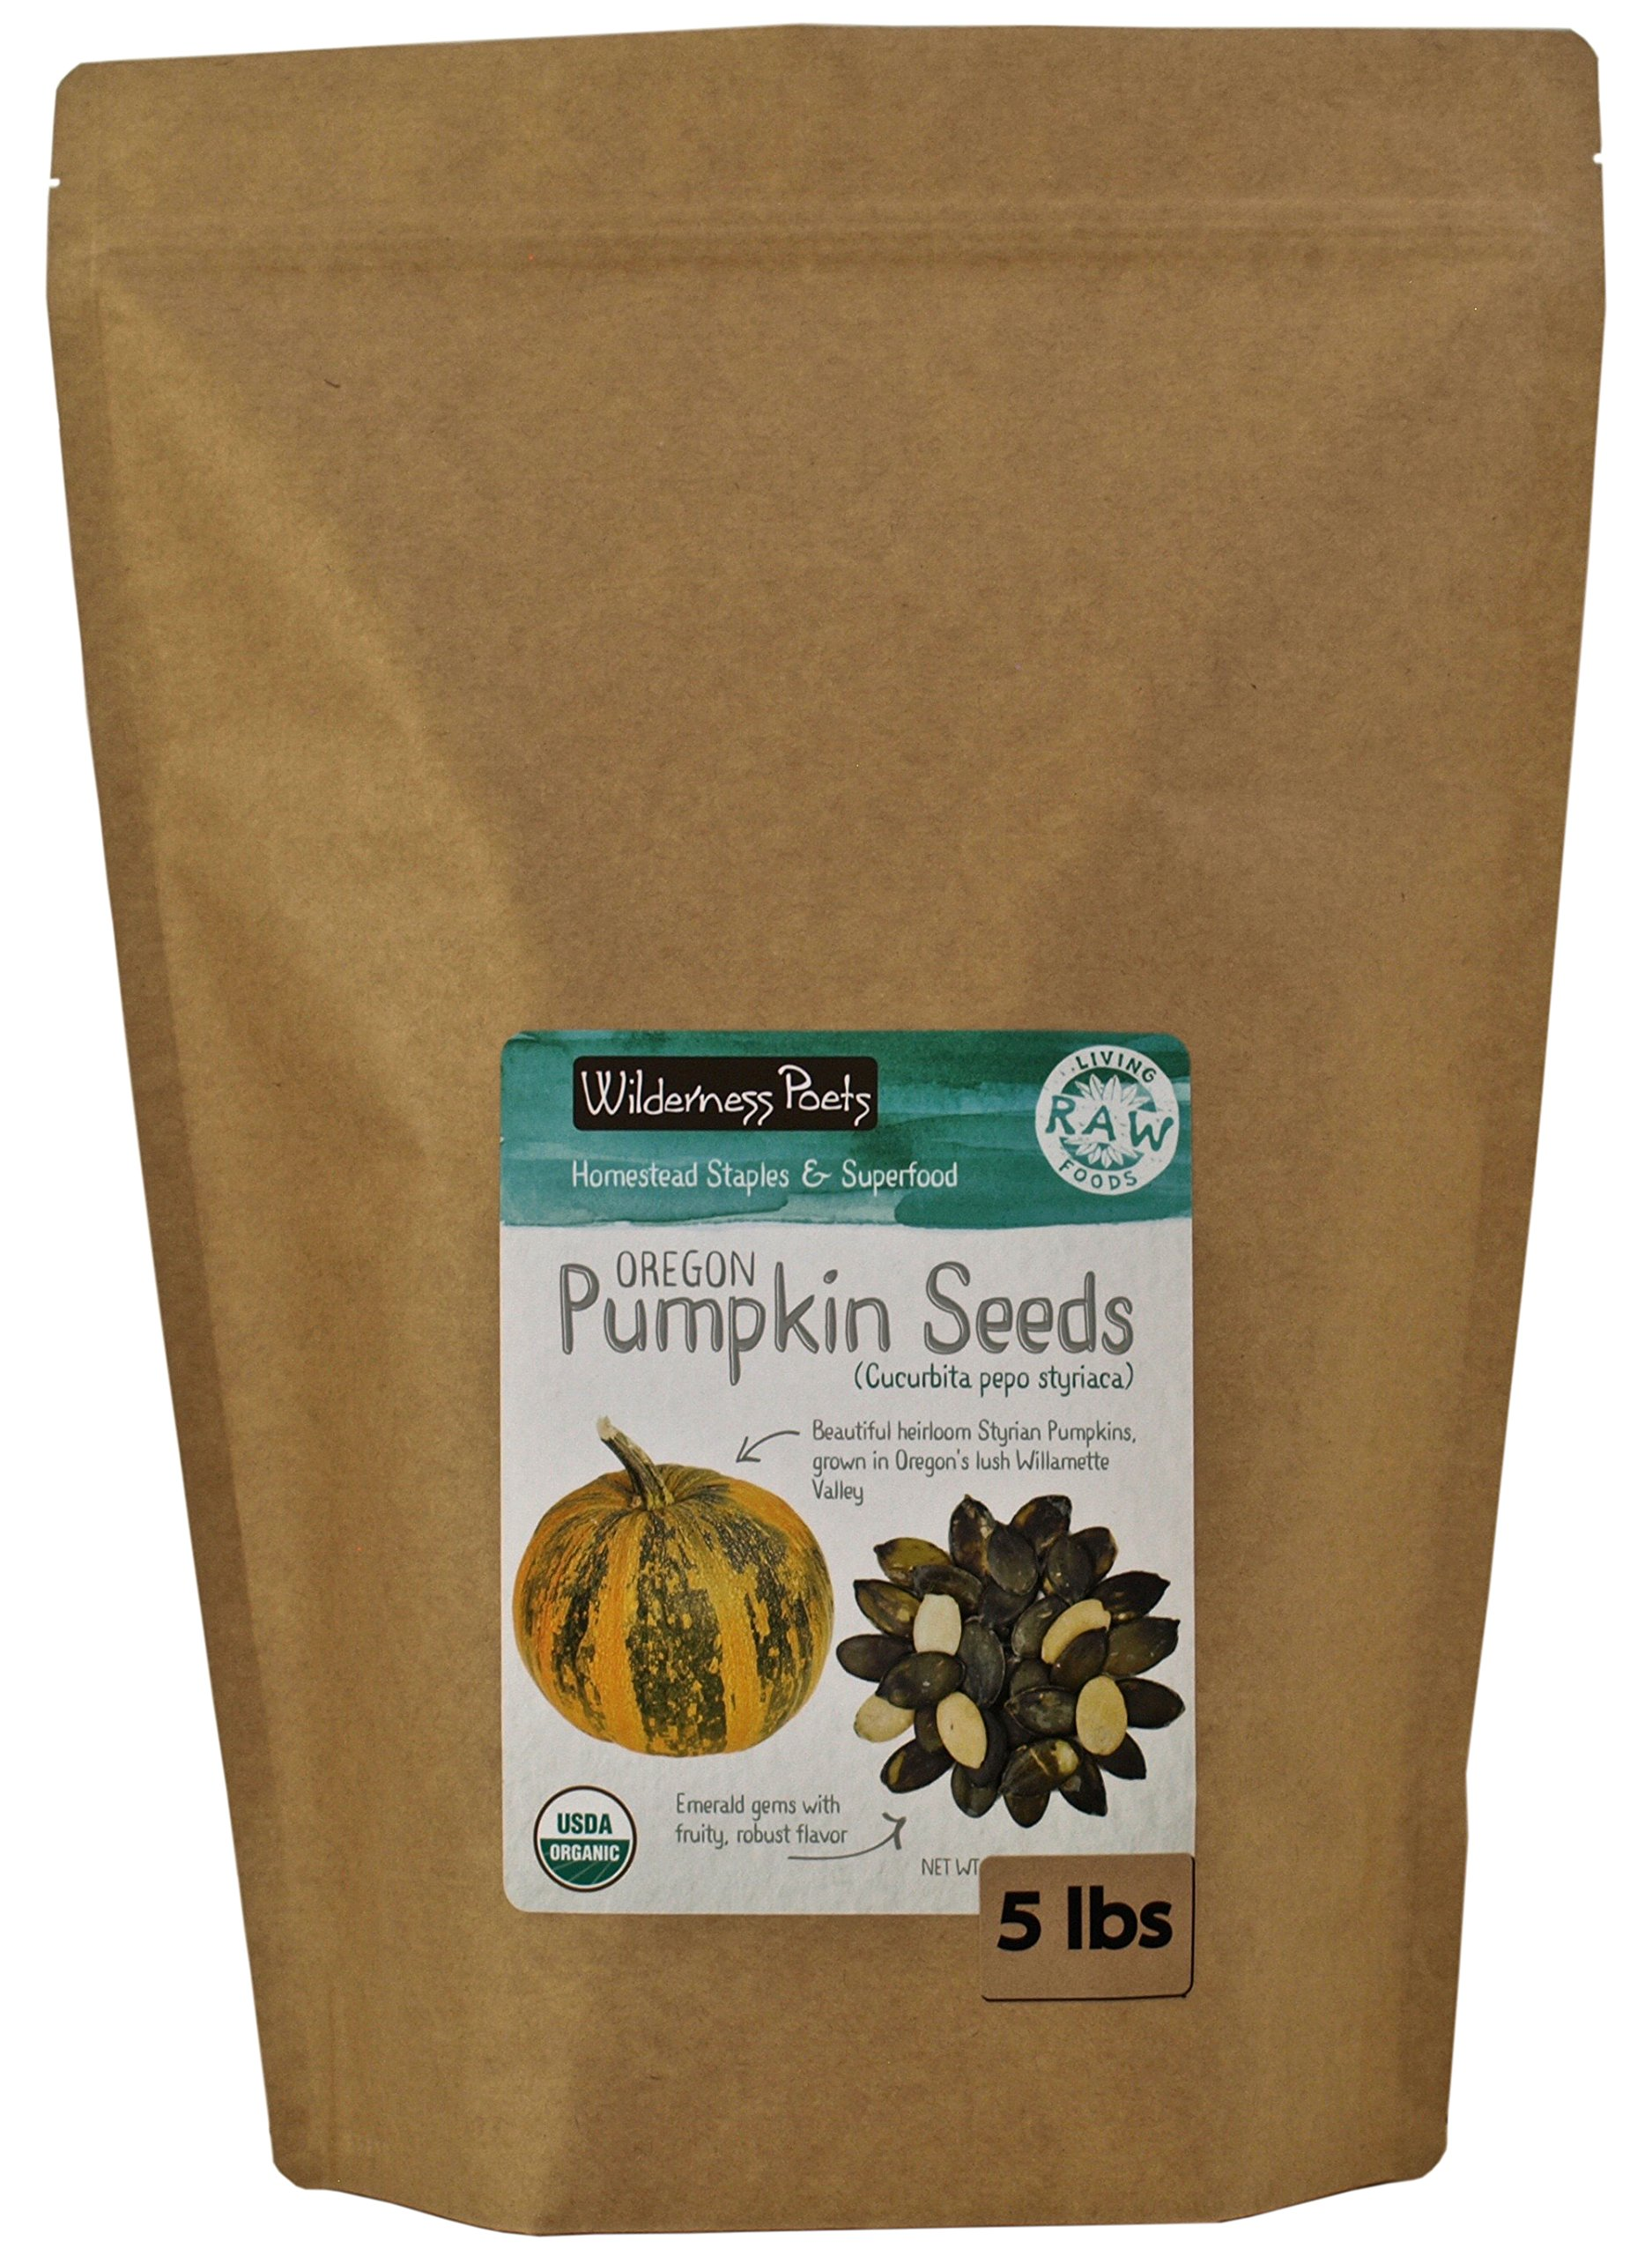 Wilderness Poets, Oregon Pumpkin Seeds - Organic, Raw, Heirloom (5 Pound) by Wilderness Poets